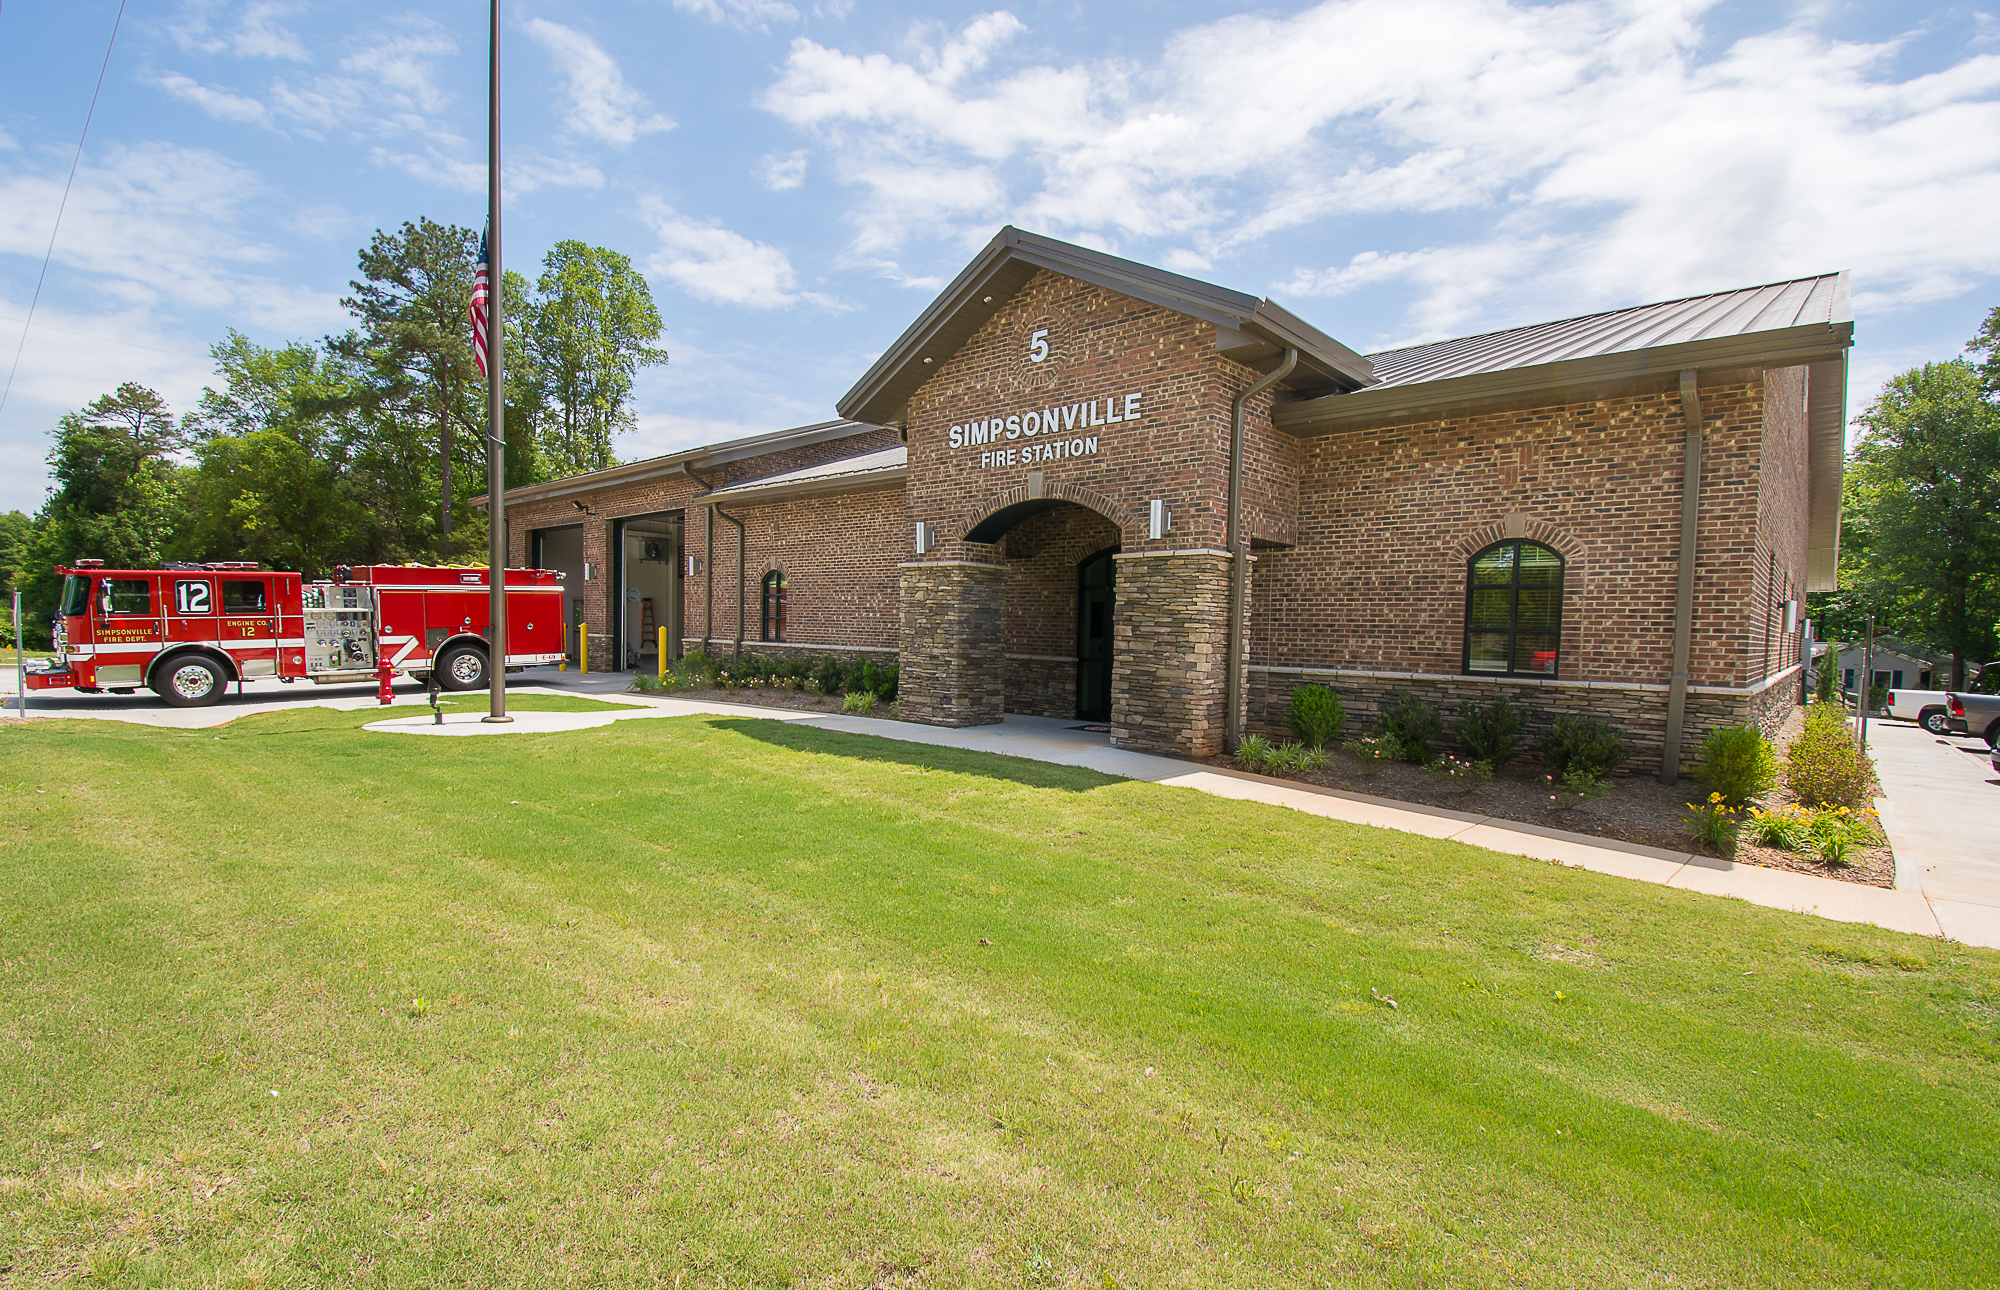 Simpsonville Fire Station 5